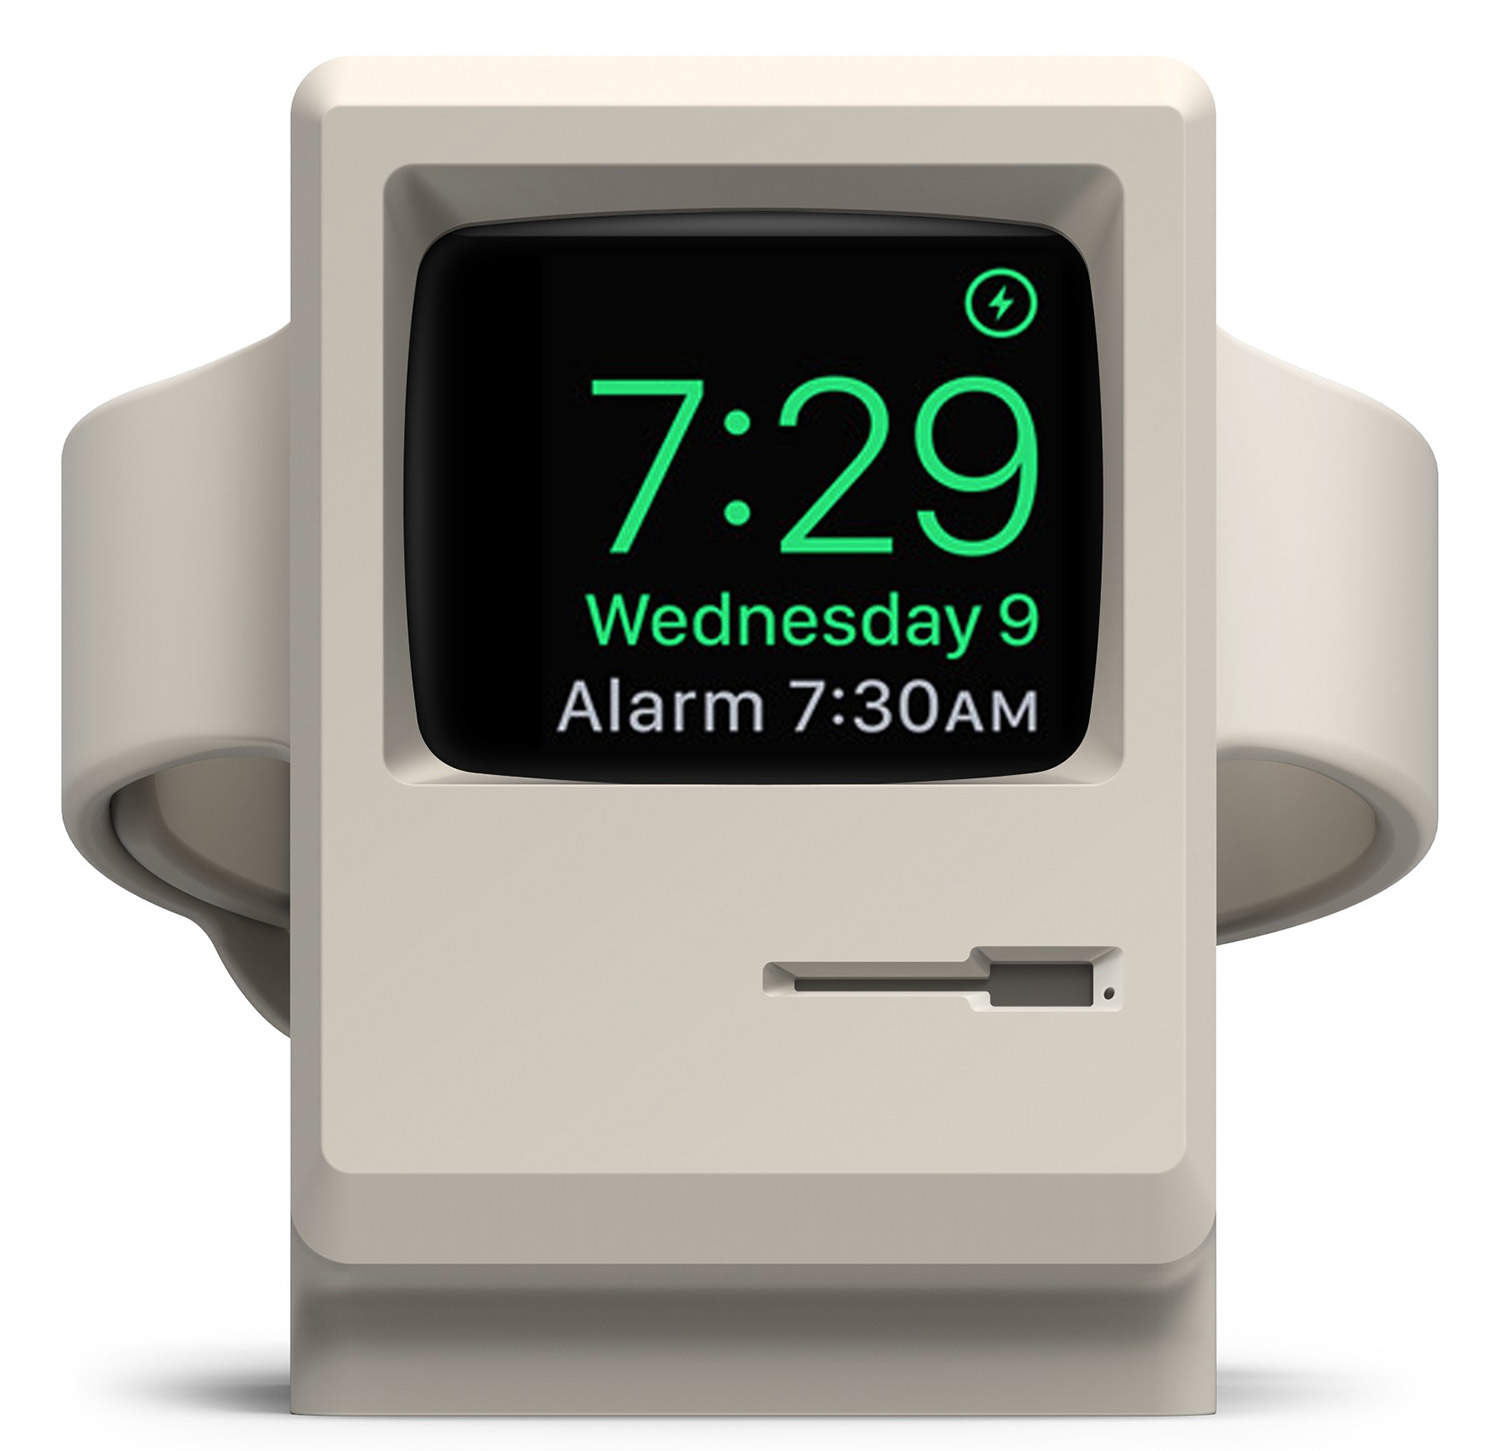 This stand from elago will charge your Apple Watch in a time warp.